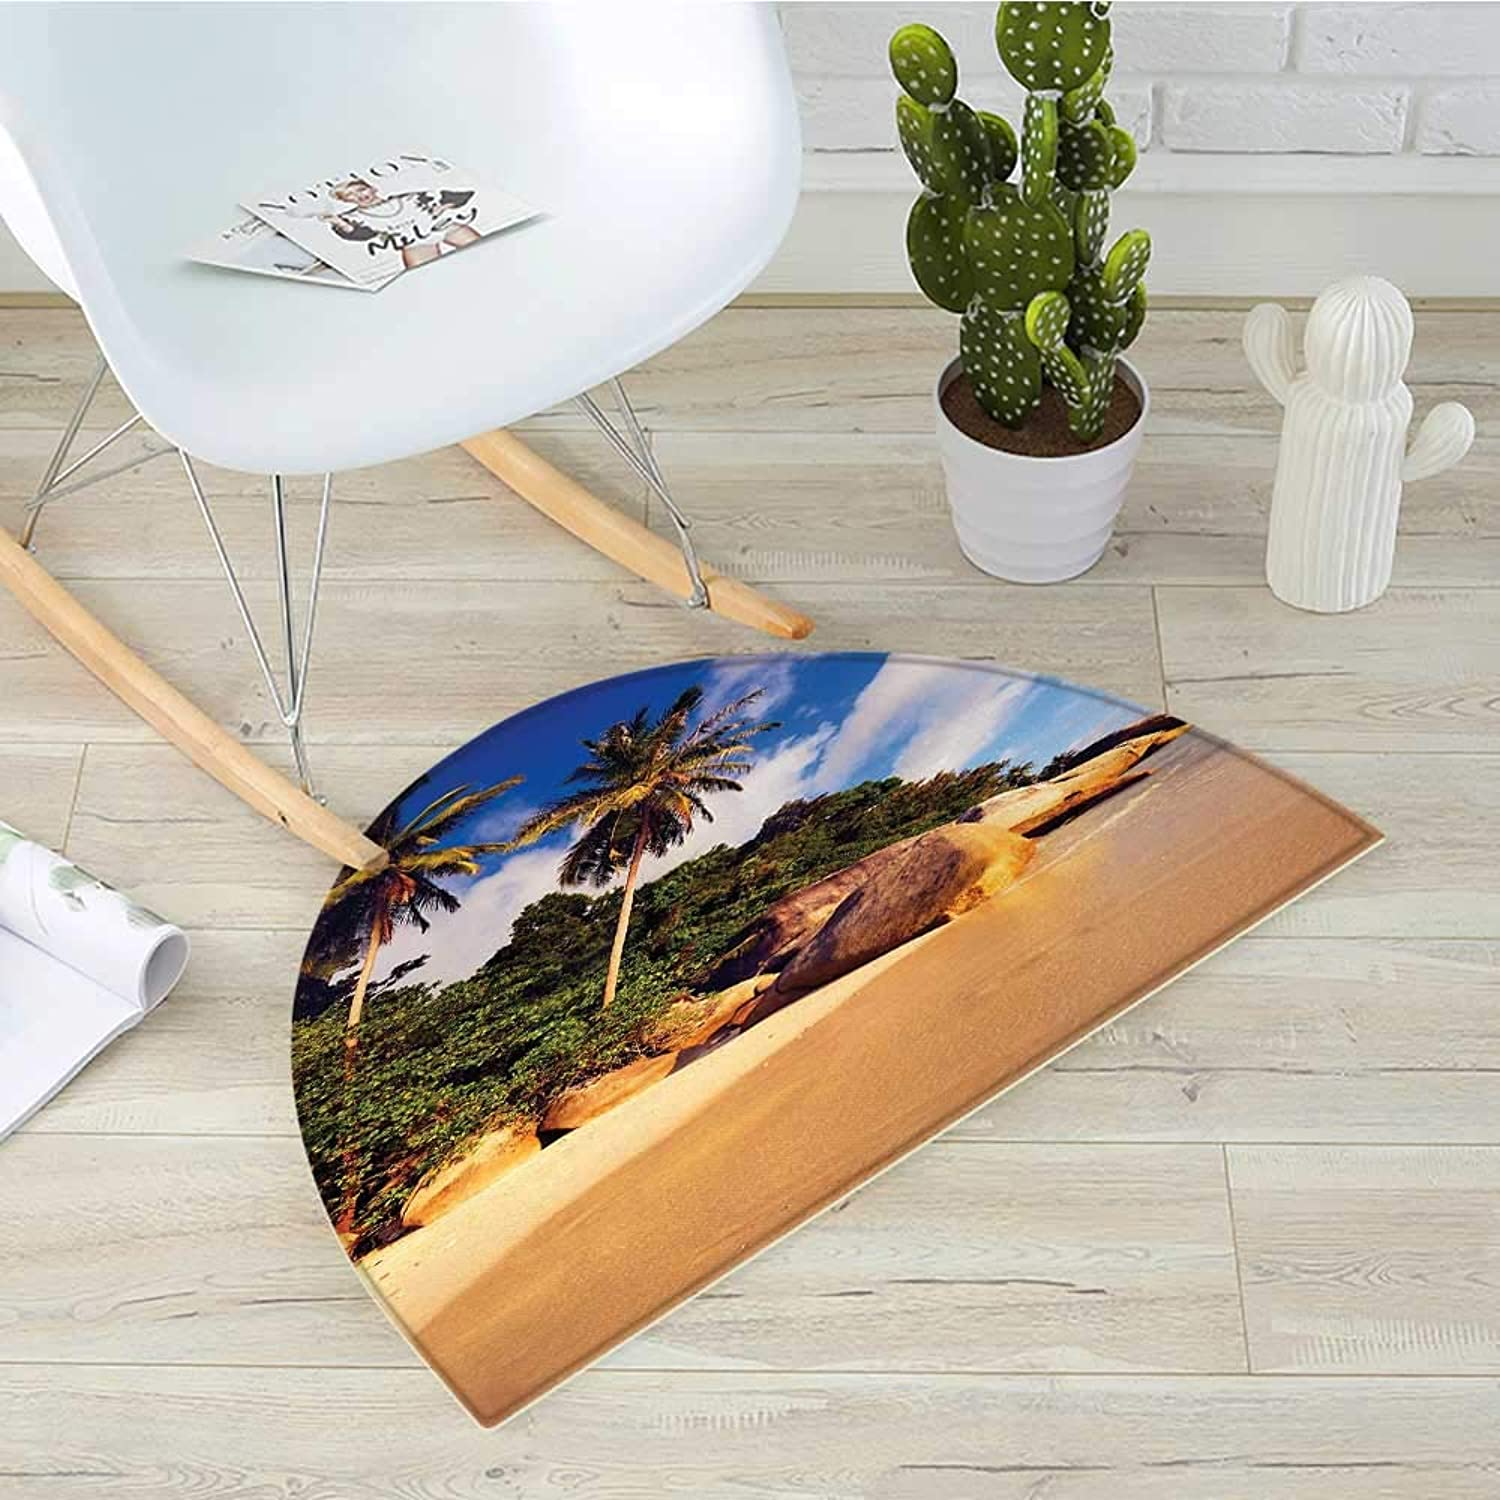 Palm Tree Semicircle Doormat Tropical Beach Serenity in Nature Exotic Fruit Coconut Rocks Seascape Print Halfmoon doormats H 39.3  xD 59  Green Brown